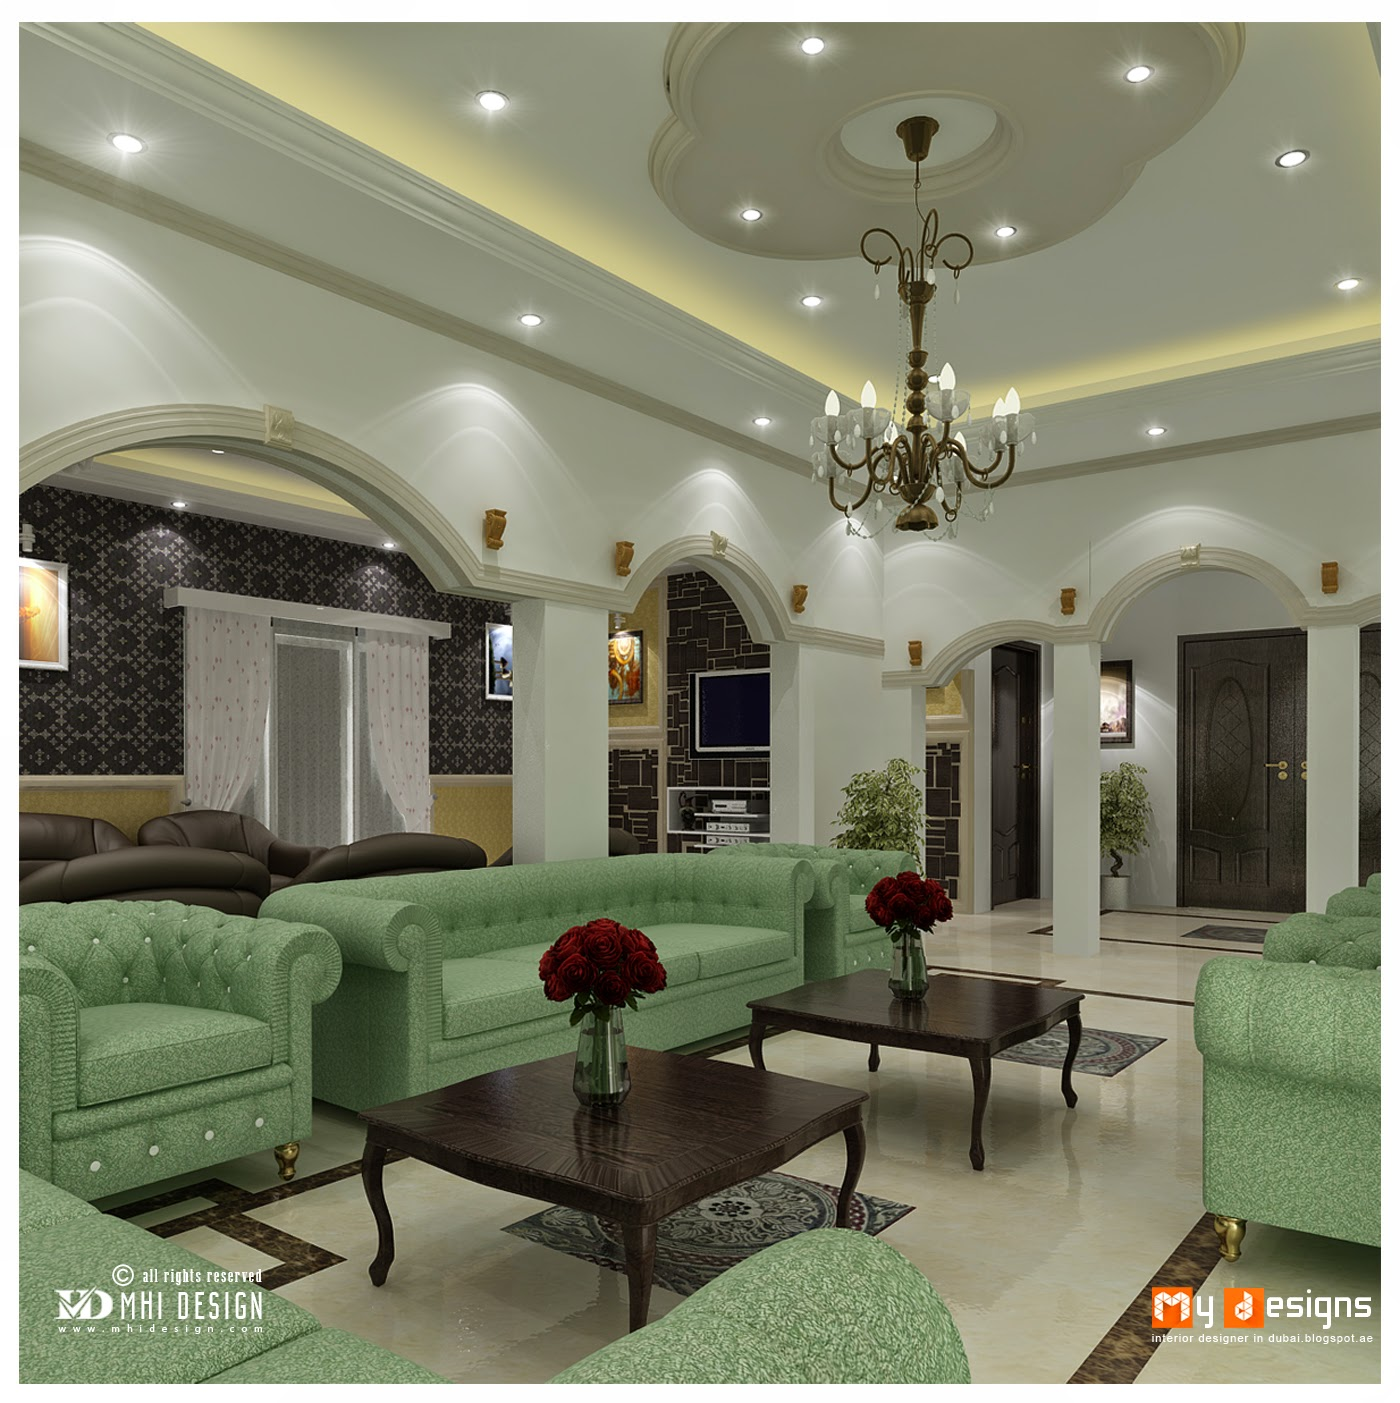 Office interior designs in dubai interior designer in for Interior designs villas